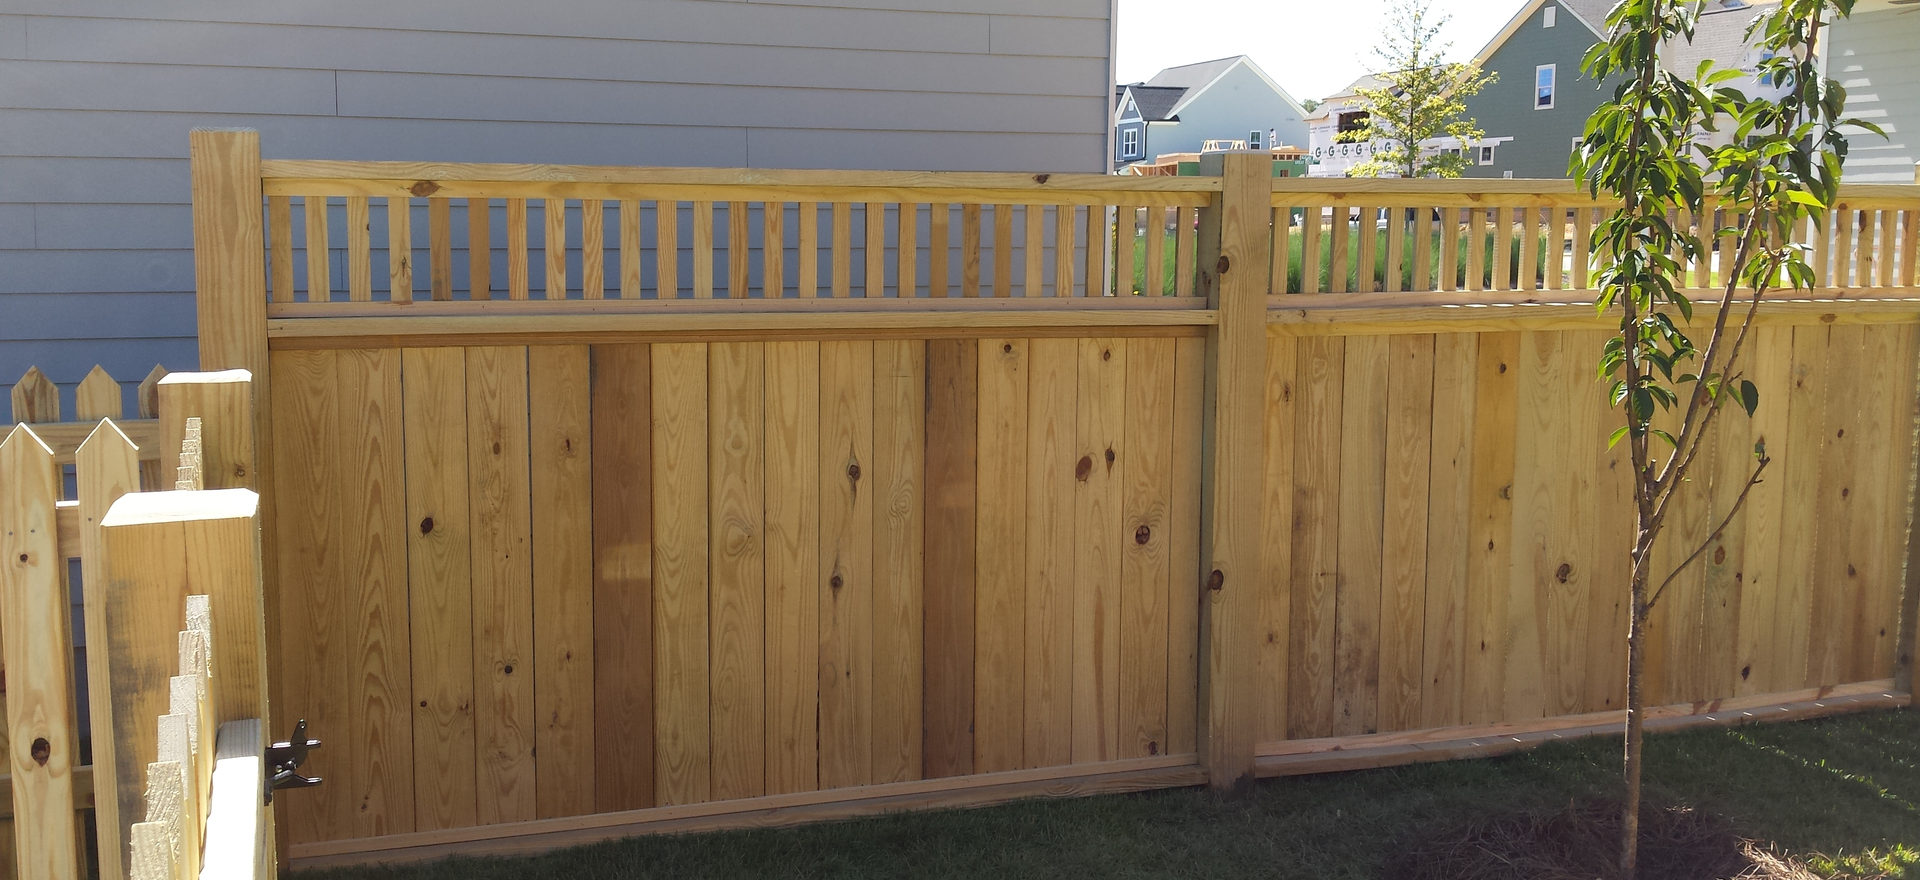 Deck and Fence 8